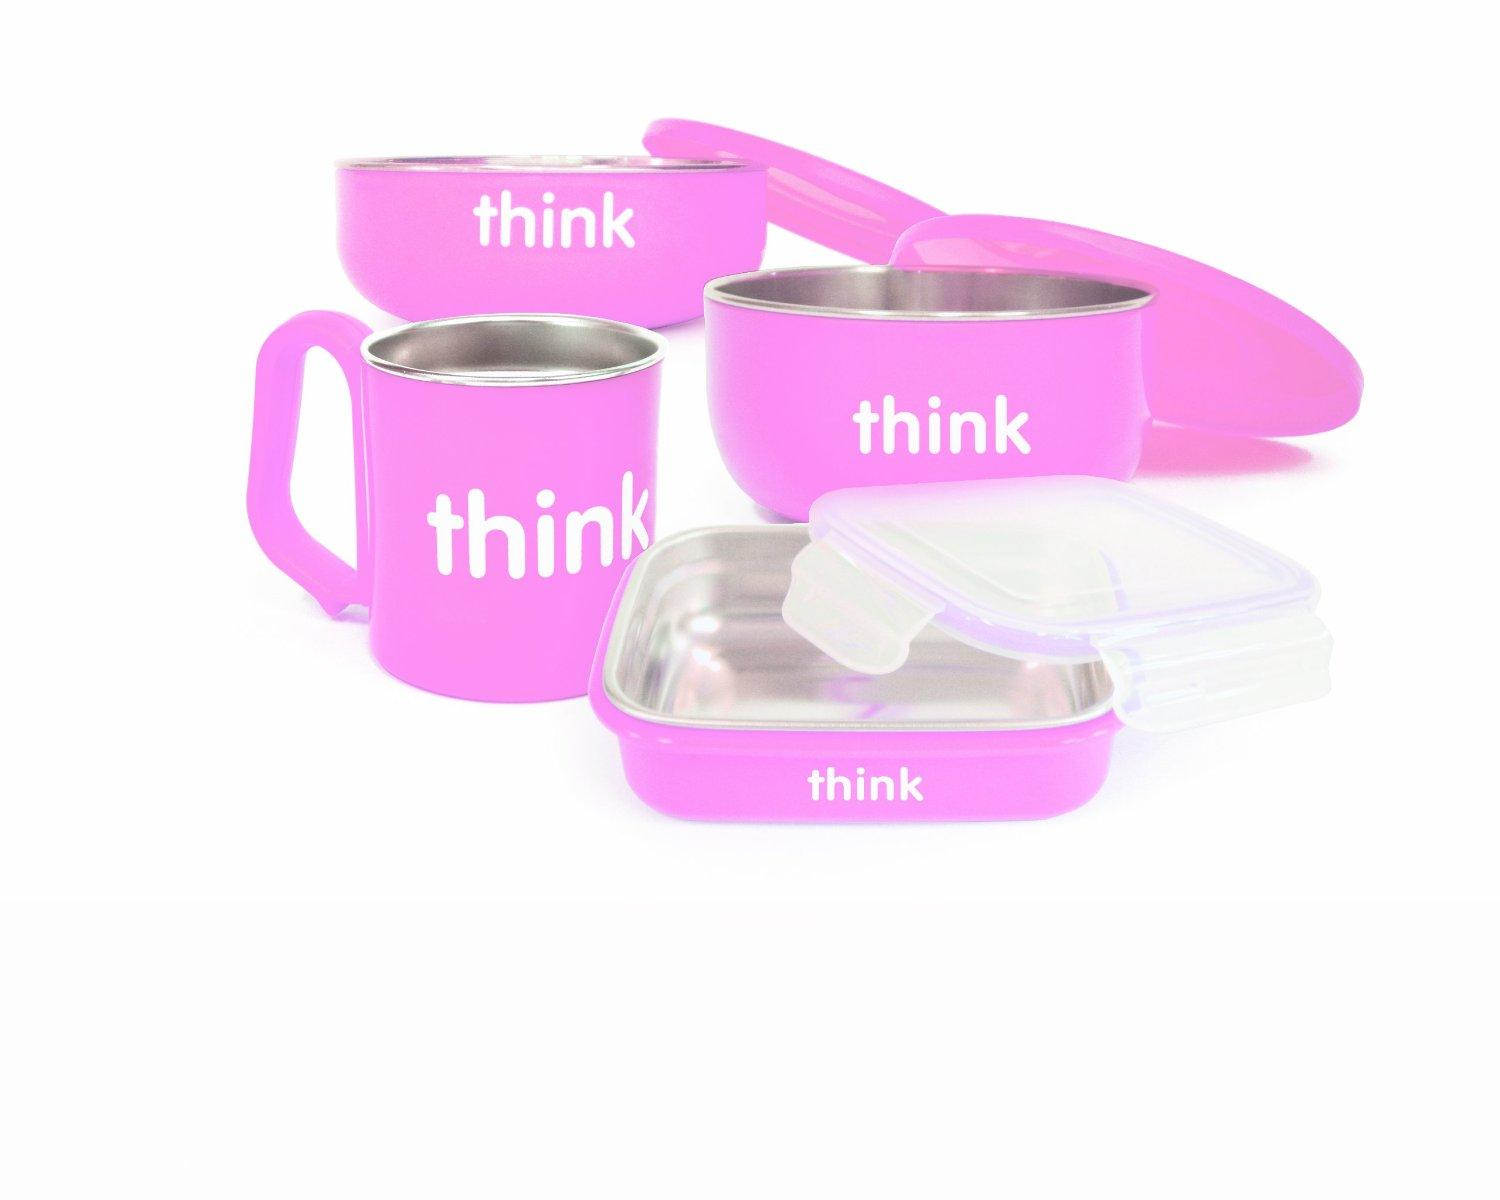 thinkbaby The Complete BPA Free Feeding Set, Light Blue or Pink